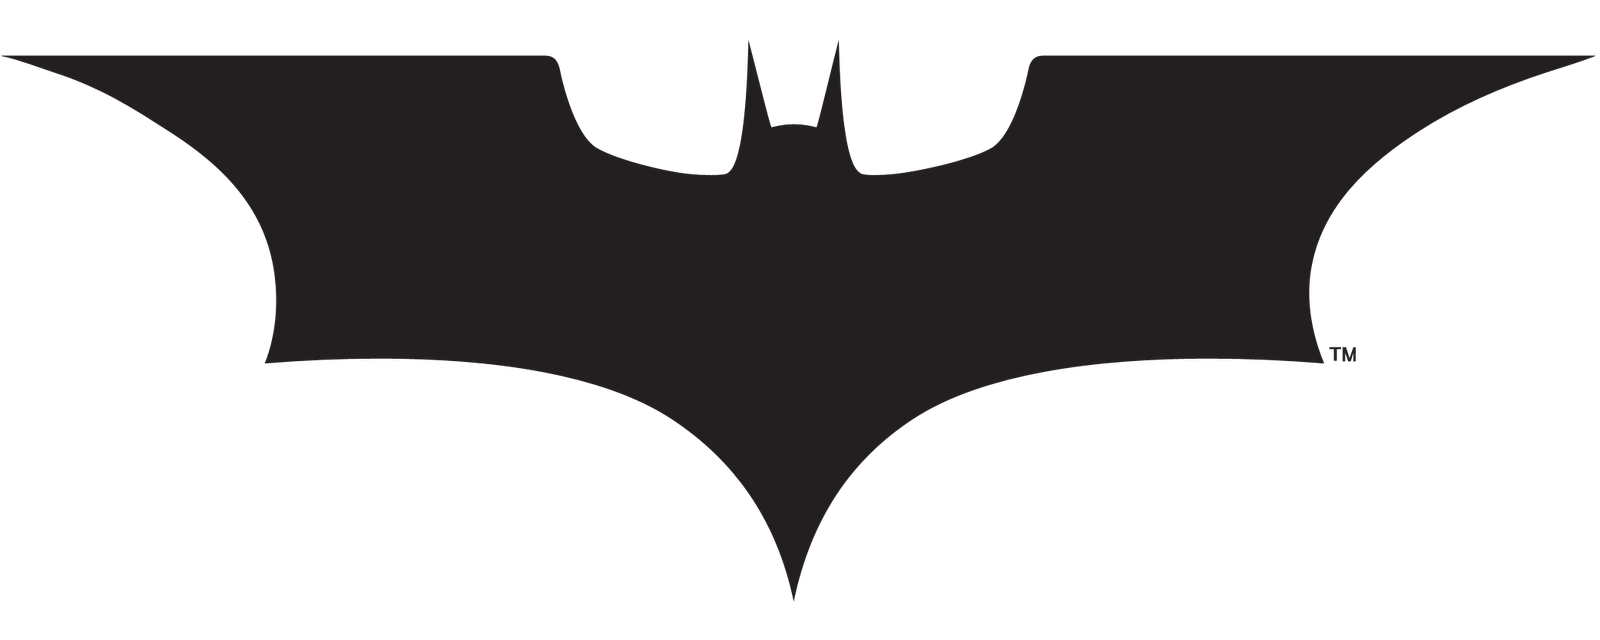 Black logo batman png #2032 - Free Transparent PNG Logos